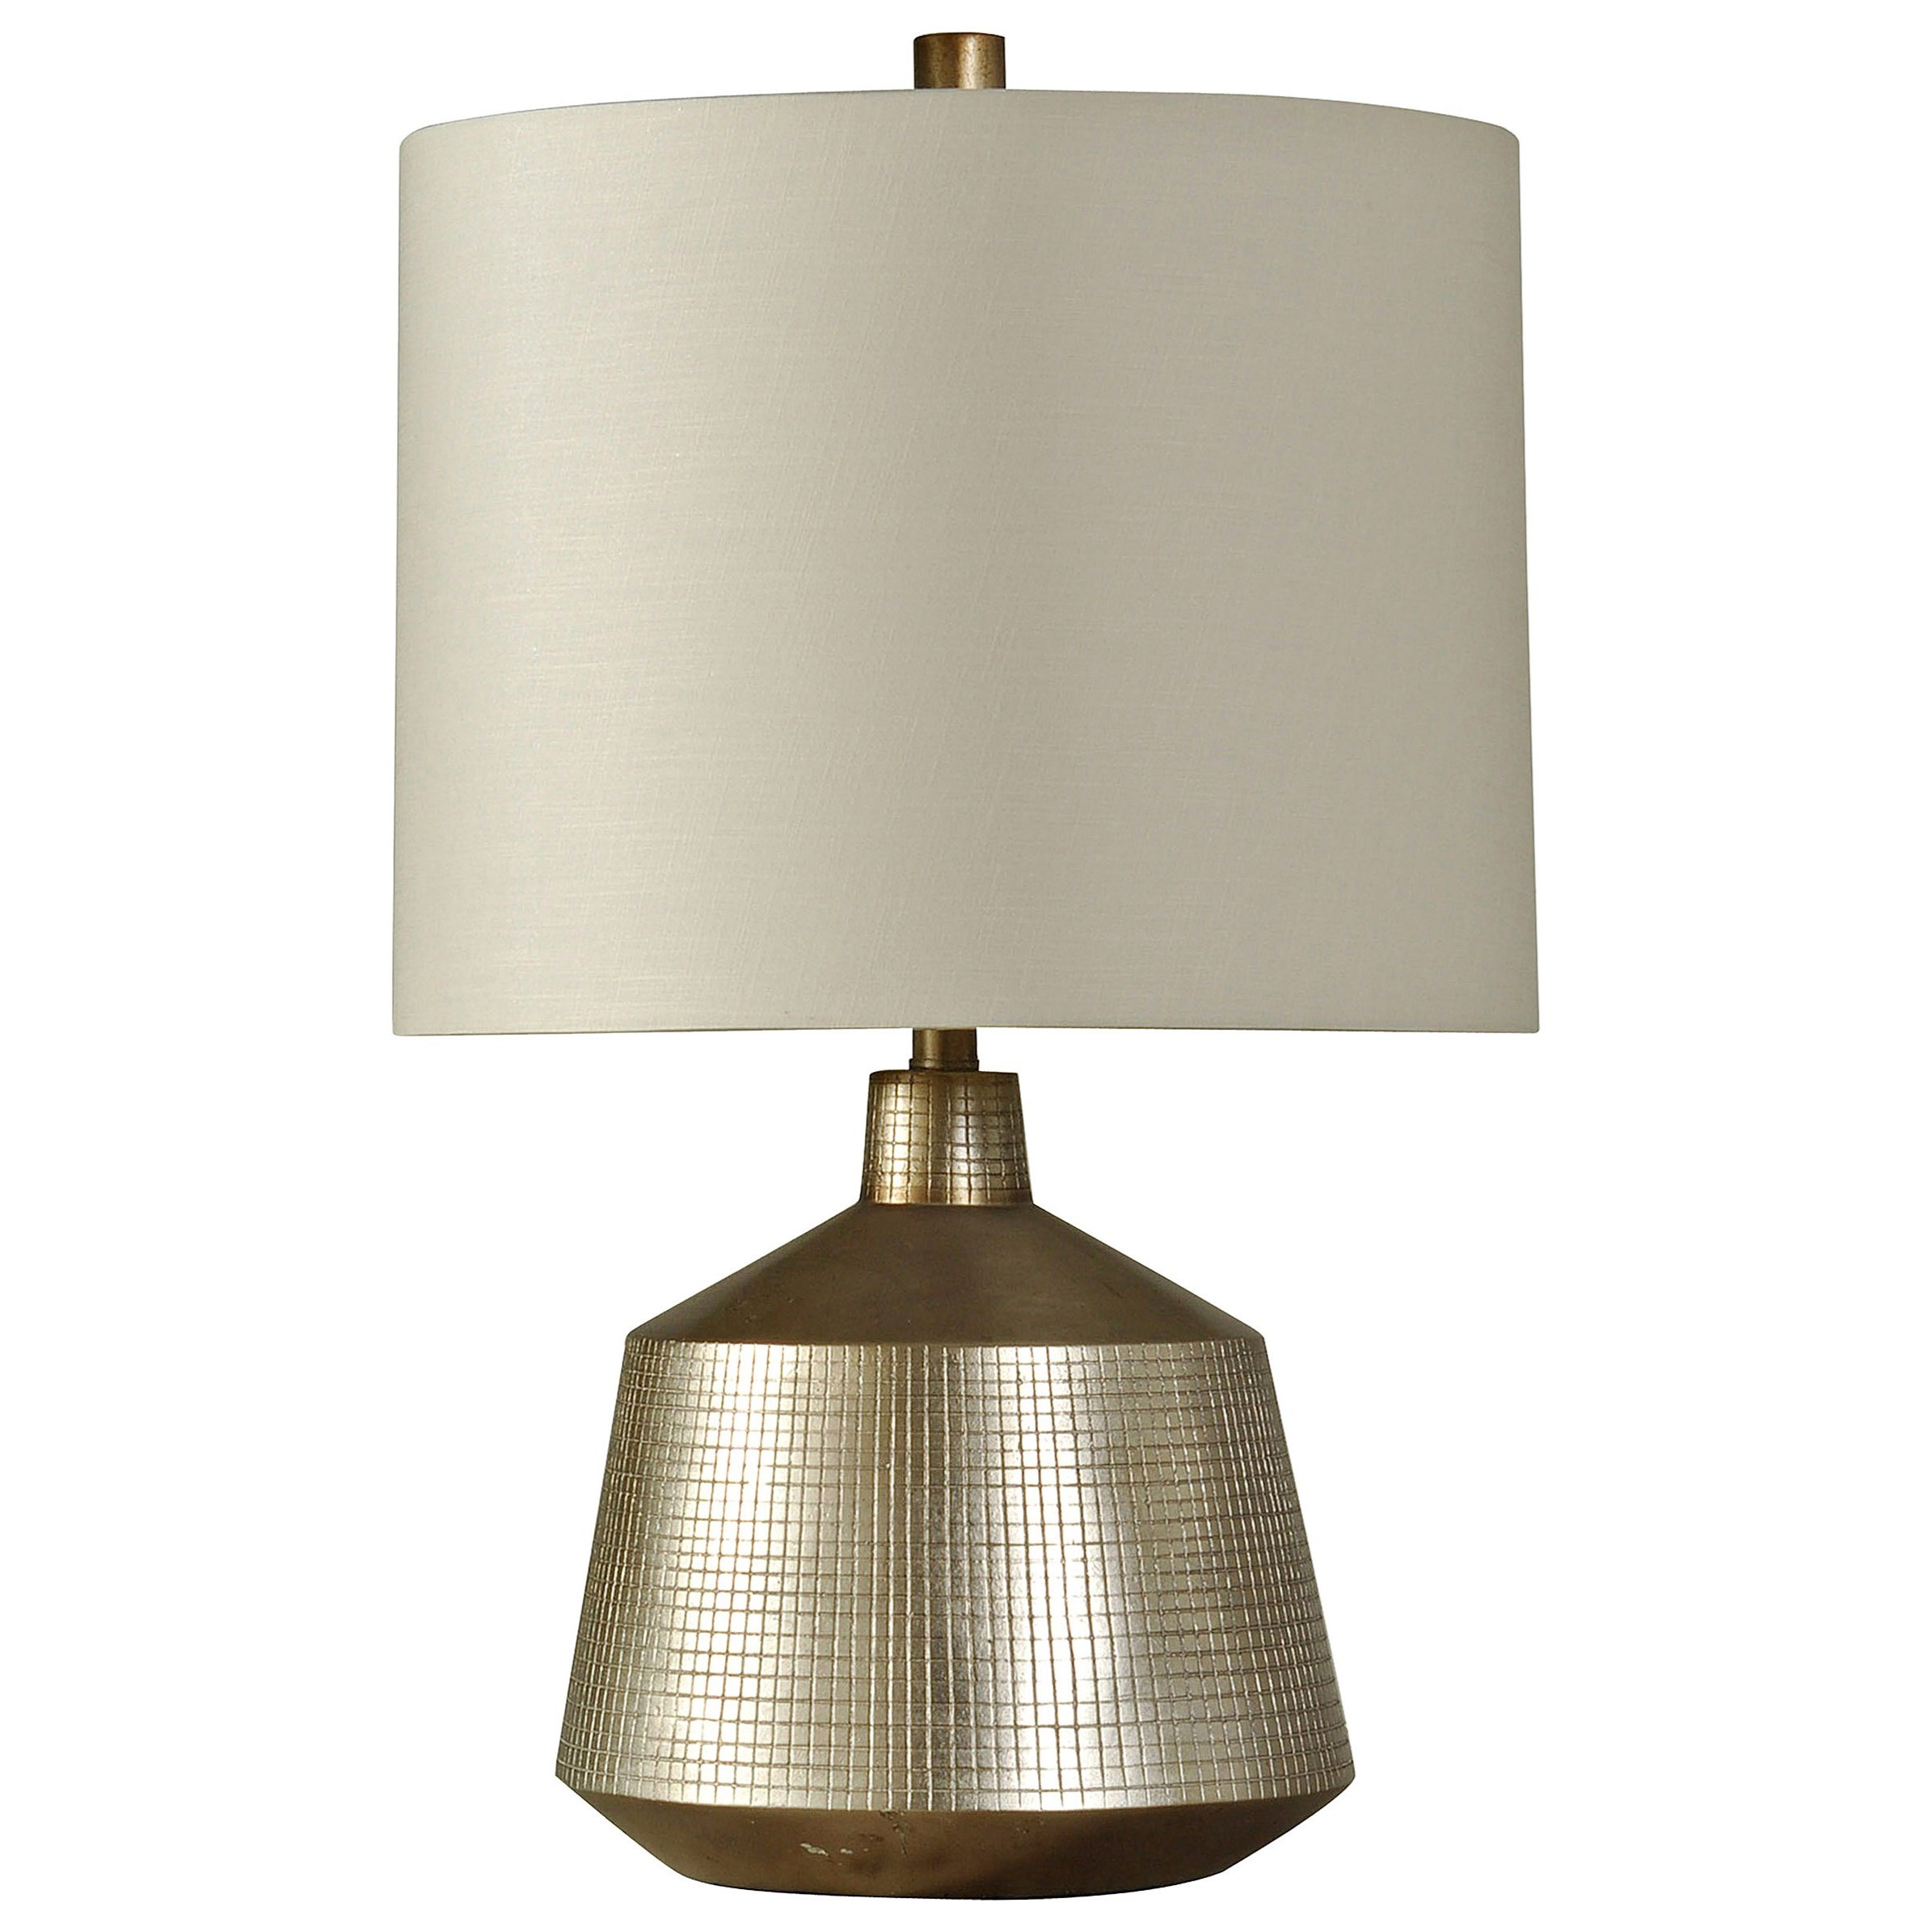 Lamps Contemporary Accent Lamp at Ruby Gordon Home